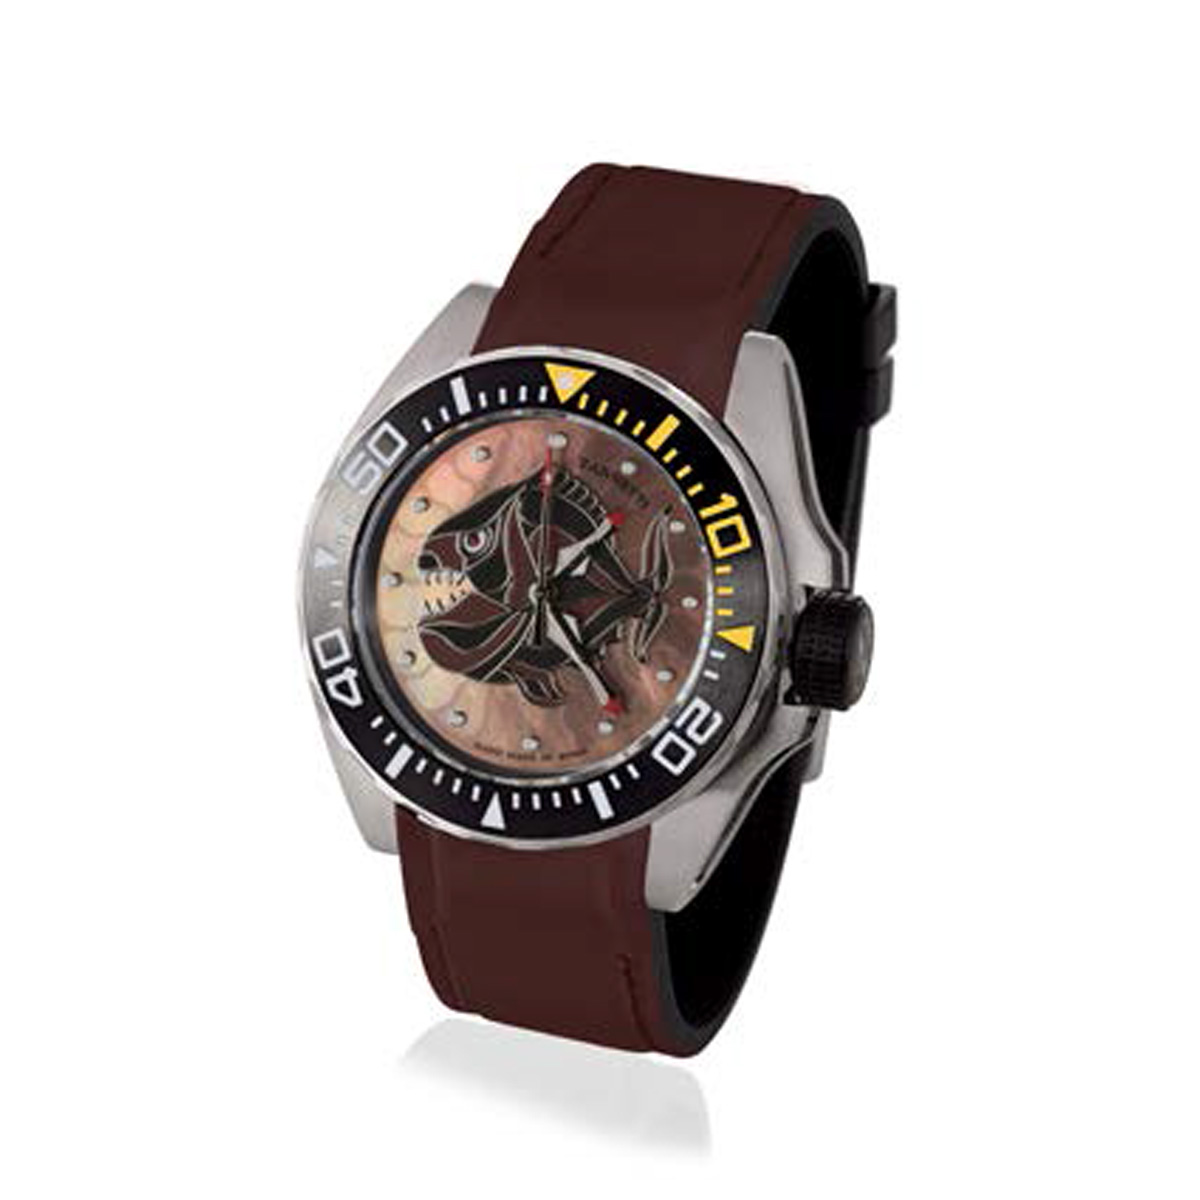 Zannetti Scuba Art Piranha MOP Dive Watch - Brown Dial - Automatic